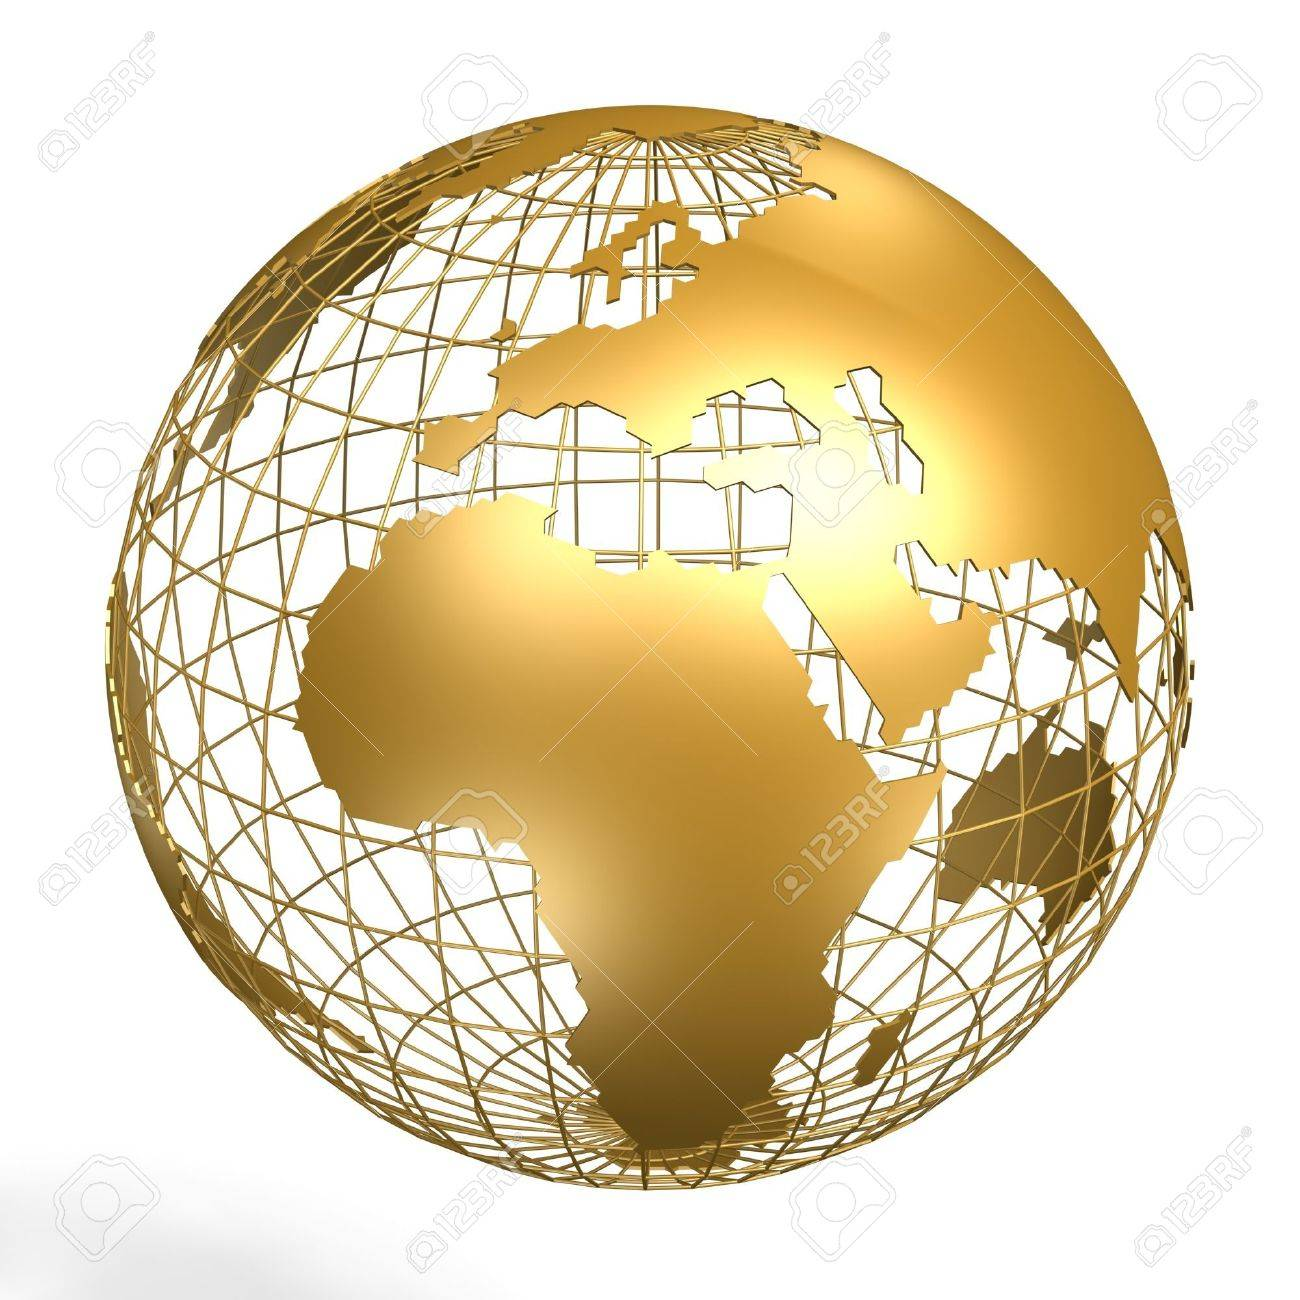 golden globe of africa and europe on frame Stock Photo - 639107